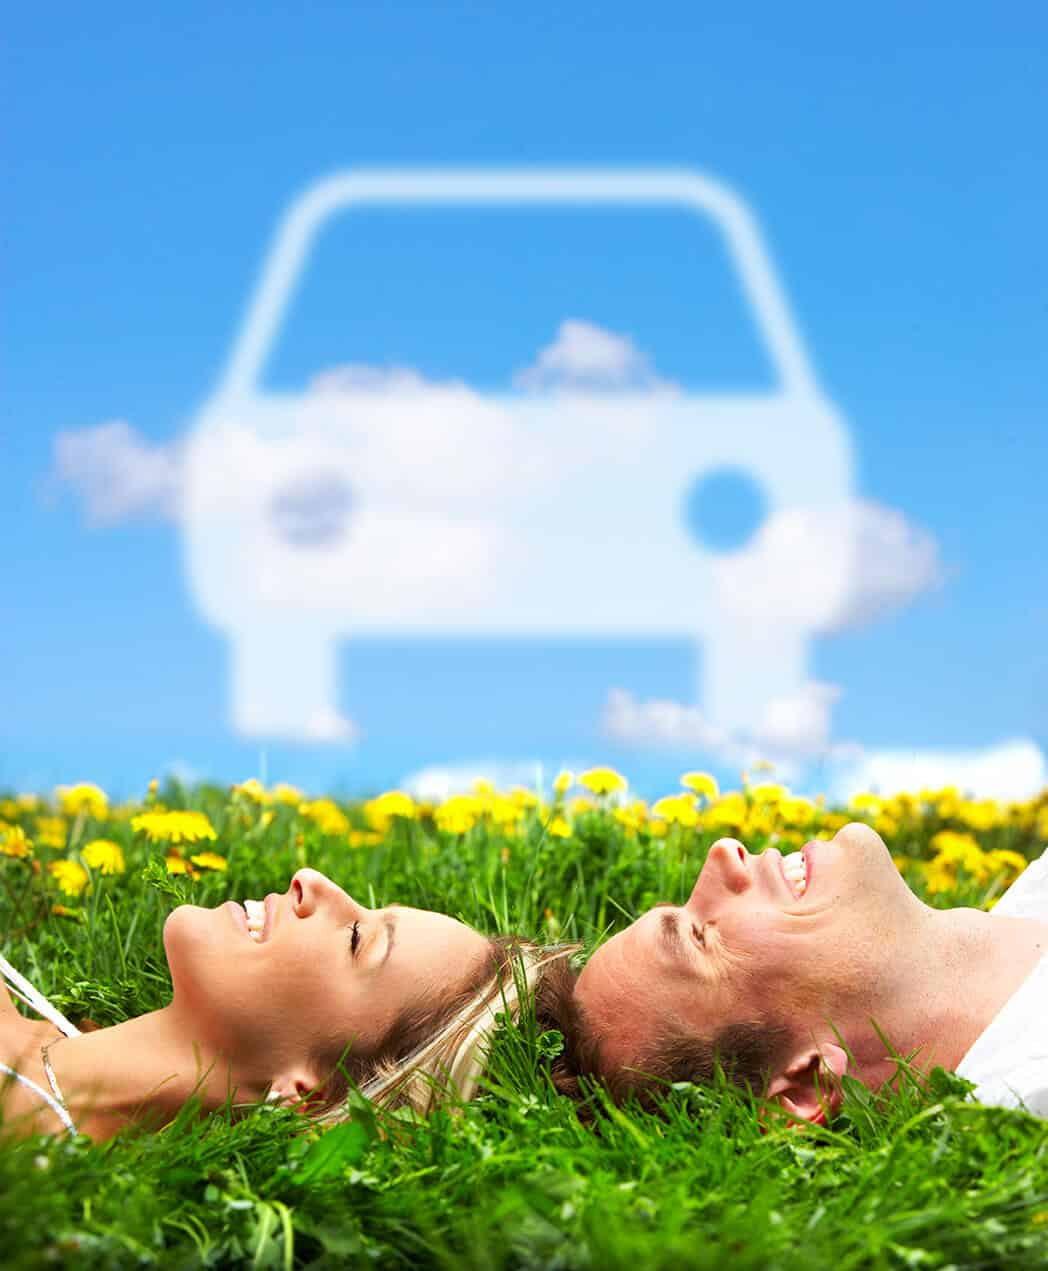 Two people laying on the ground with an image of a car in the clouds.